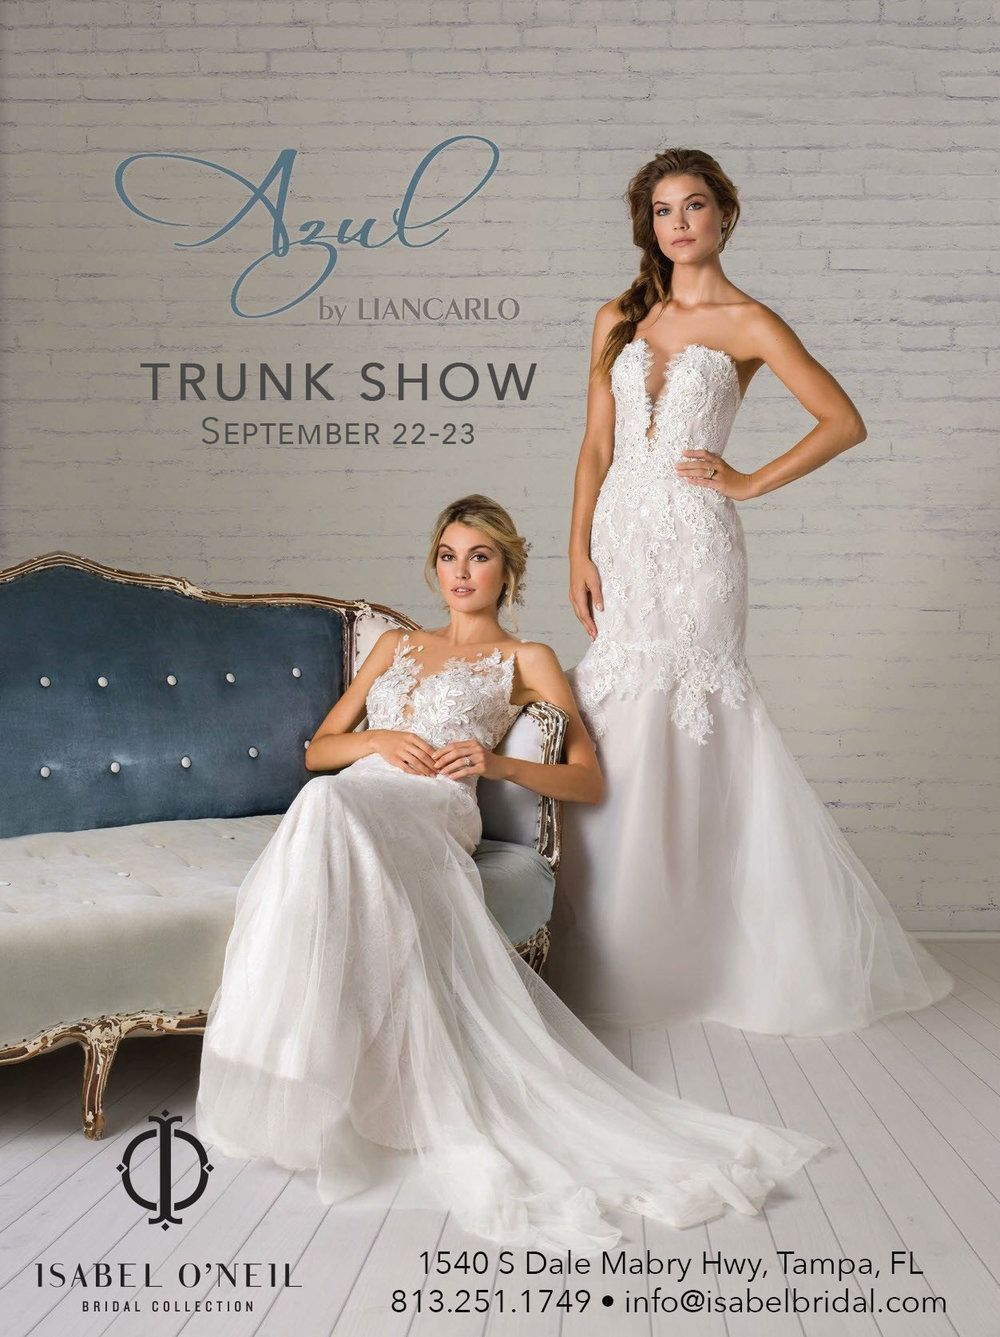 Wedding dress trunk show  AzulbyLiancarloTrunkShowg  EVENTS at Isabel Ouneil Bridal